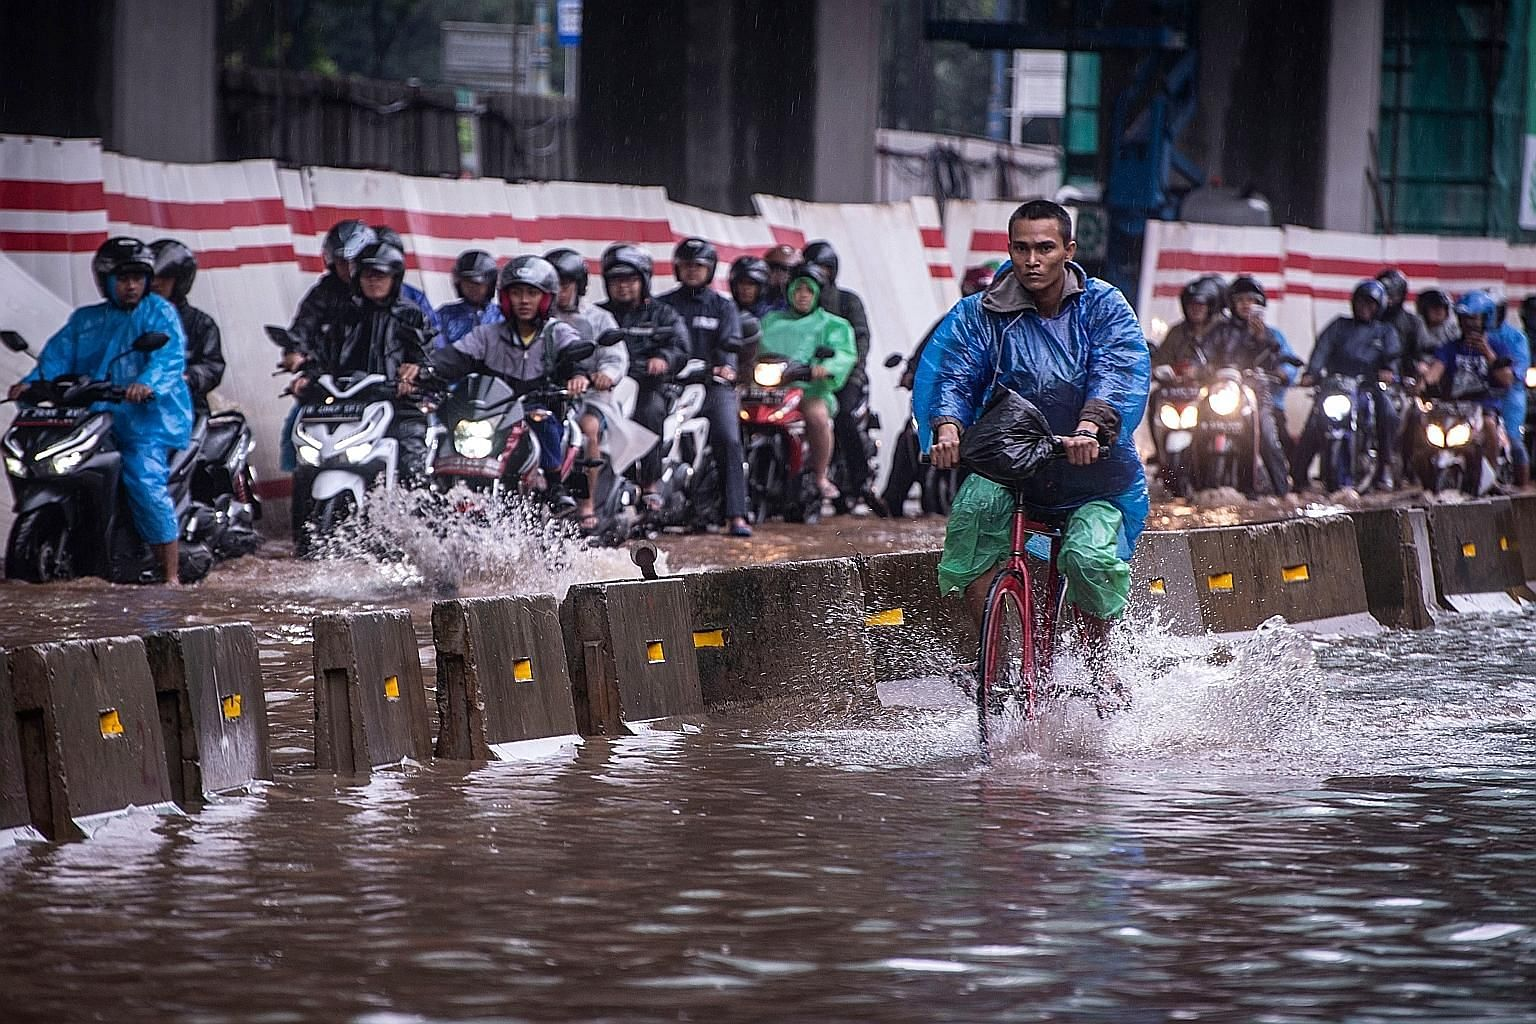 A flooded street in Jakarta, Indonesia, on Tuesday. The country is already planning to move its capital to the island of Borneo, as Jakarta is slowly sinking and suffers from regular flooding. Compared with China and Japan, Indonesia has limited reso